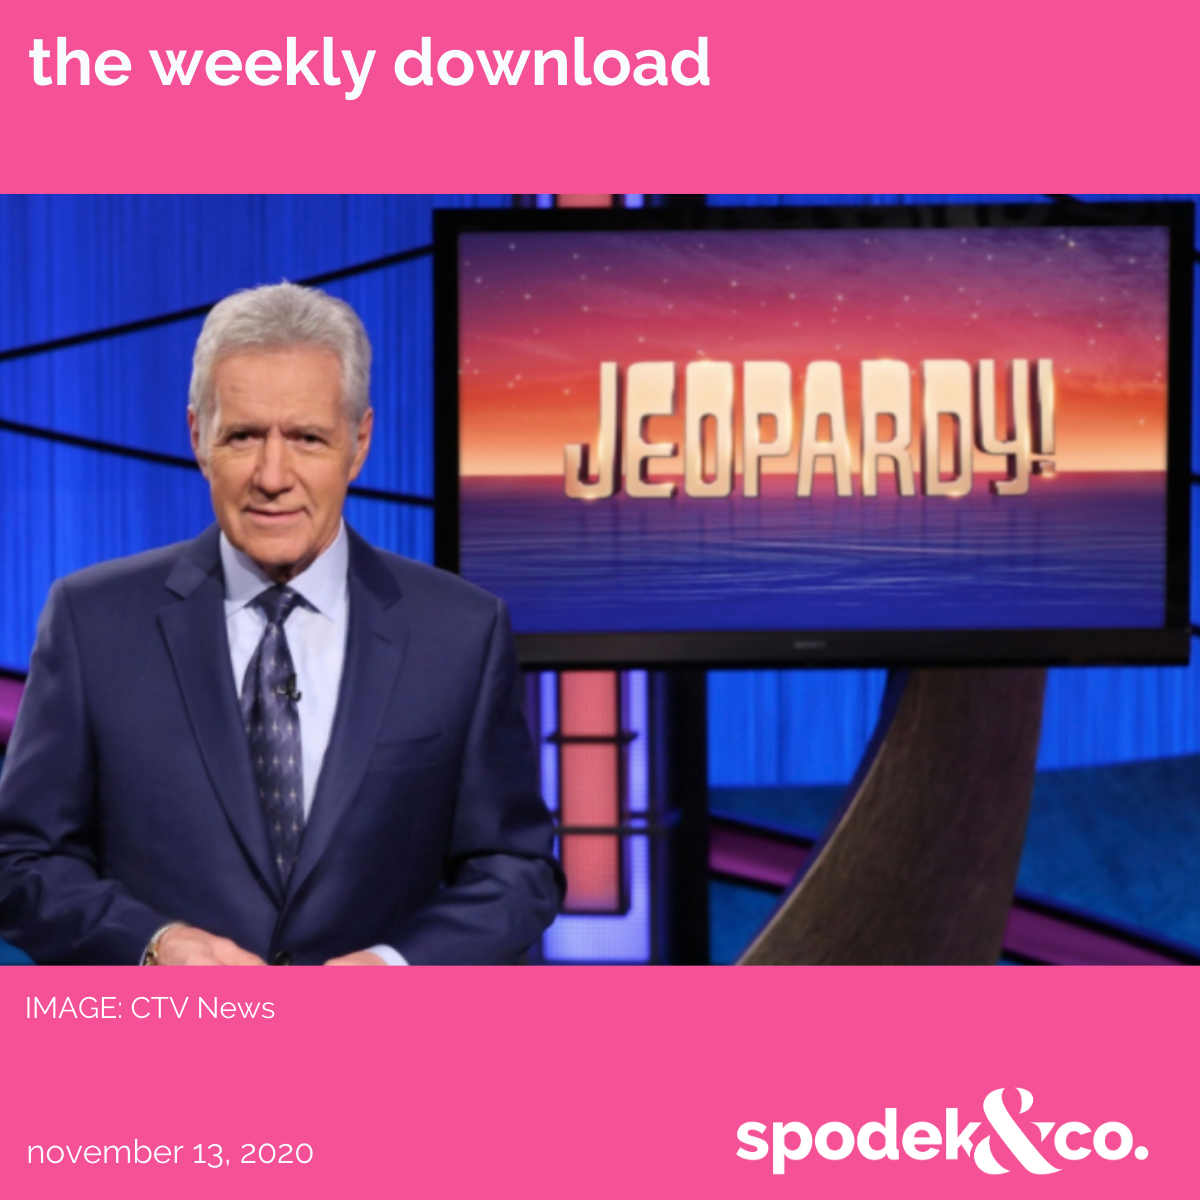 The Weekly Download – November 13, 2020